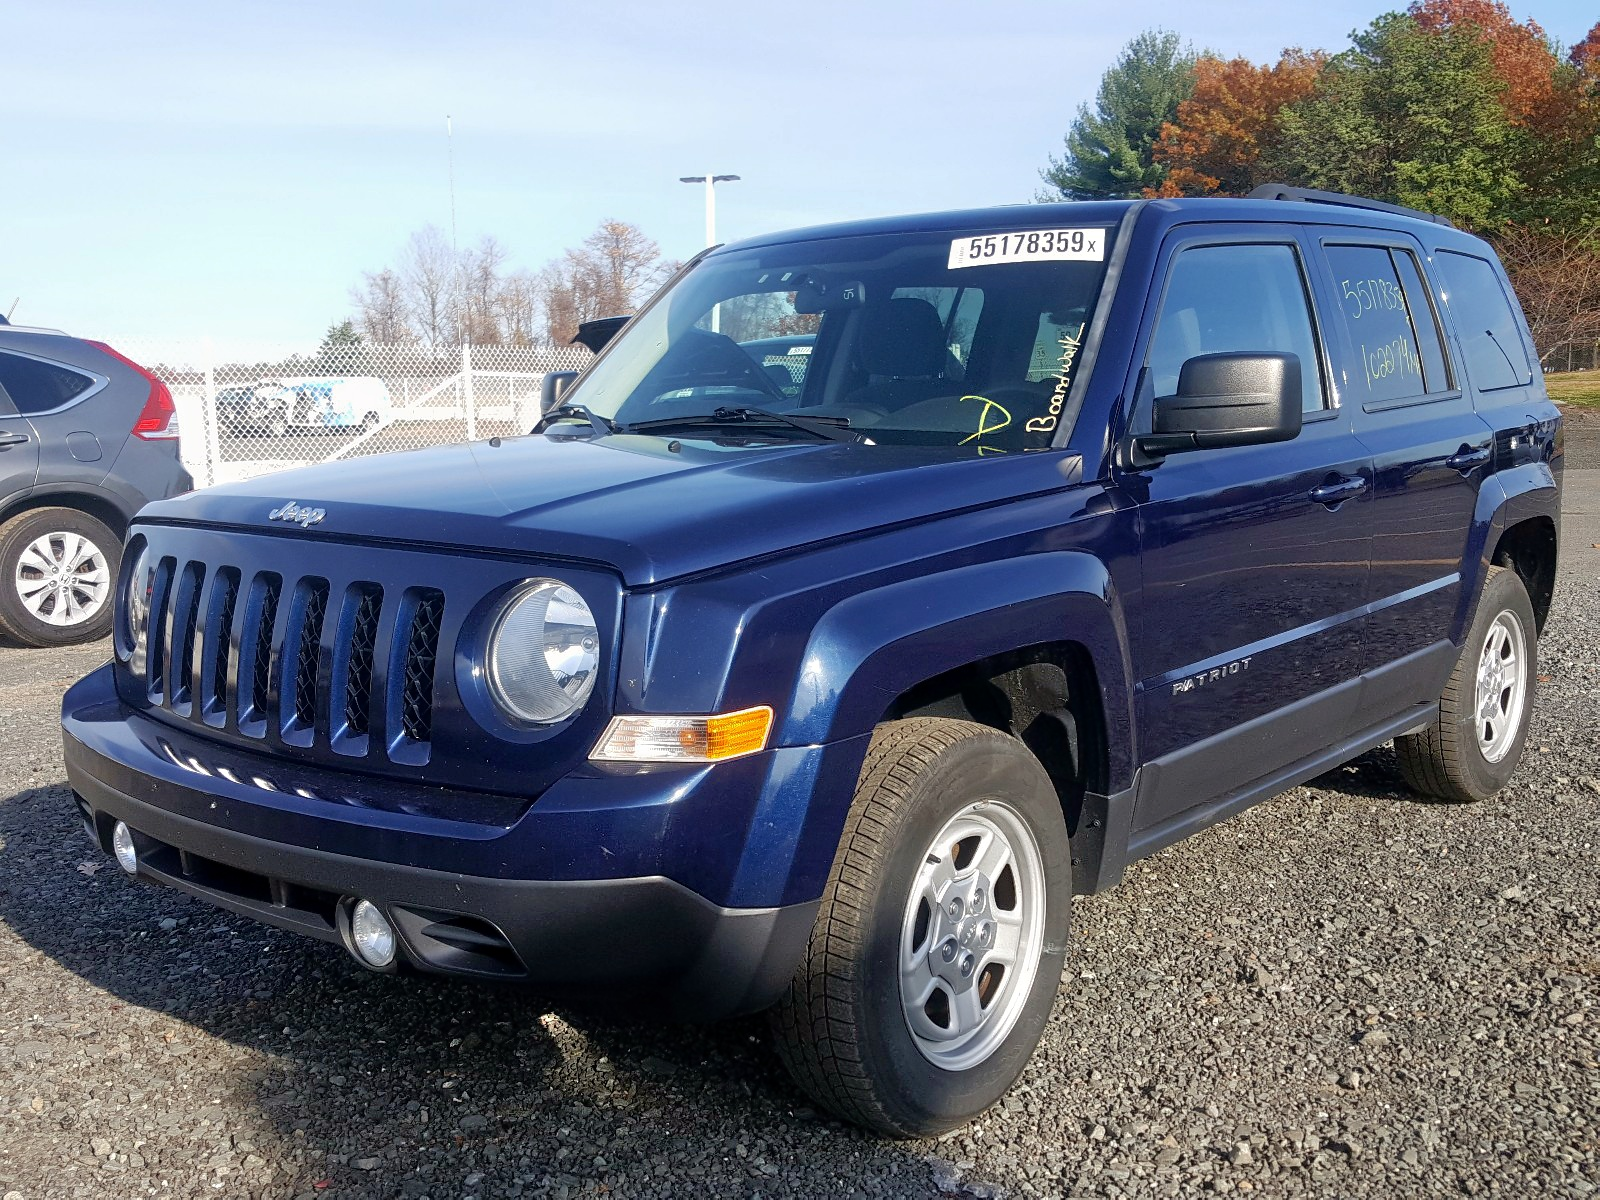 2015 Jeep Patriot Sp 2.4L Right View